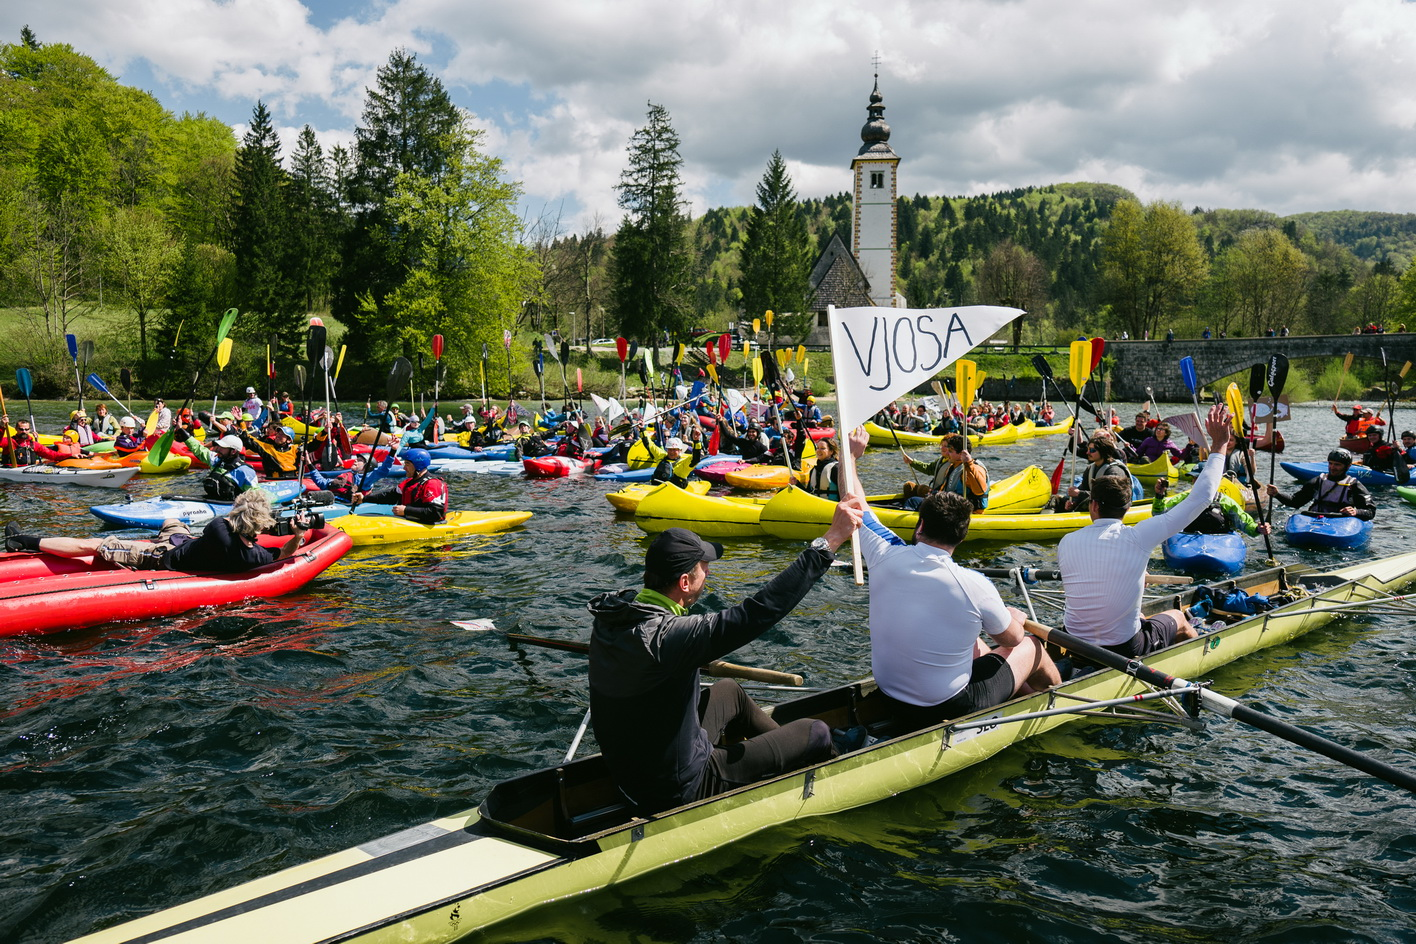 About 150 paddlers opened the Balkan Rivers Tour at Bohinj Lake in Slovenia on Saturday, April 16. © Jan Pirnat